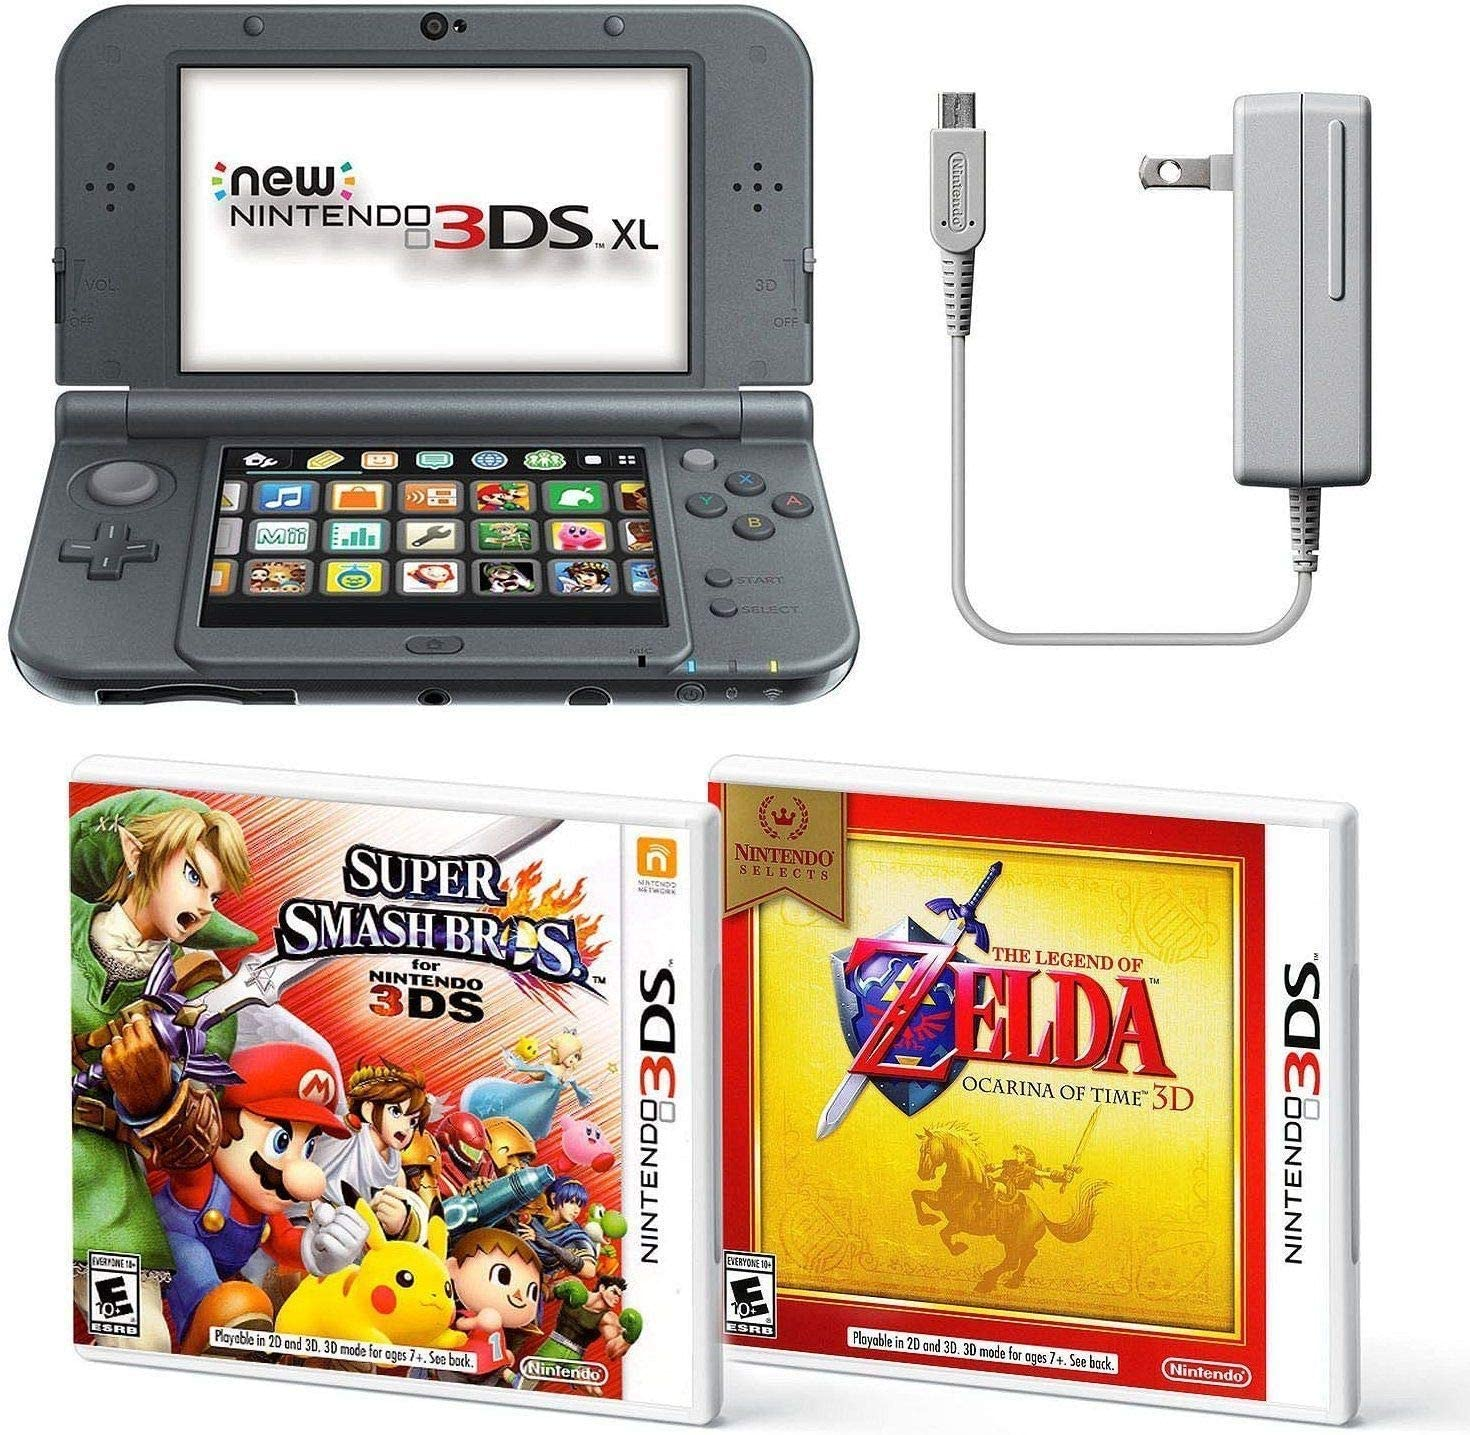 Black Nintendo 3DS XL Bundle Nintendo, AC Adapter, and Two Full Games 3D Mode Ages 7 Years